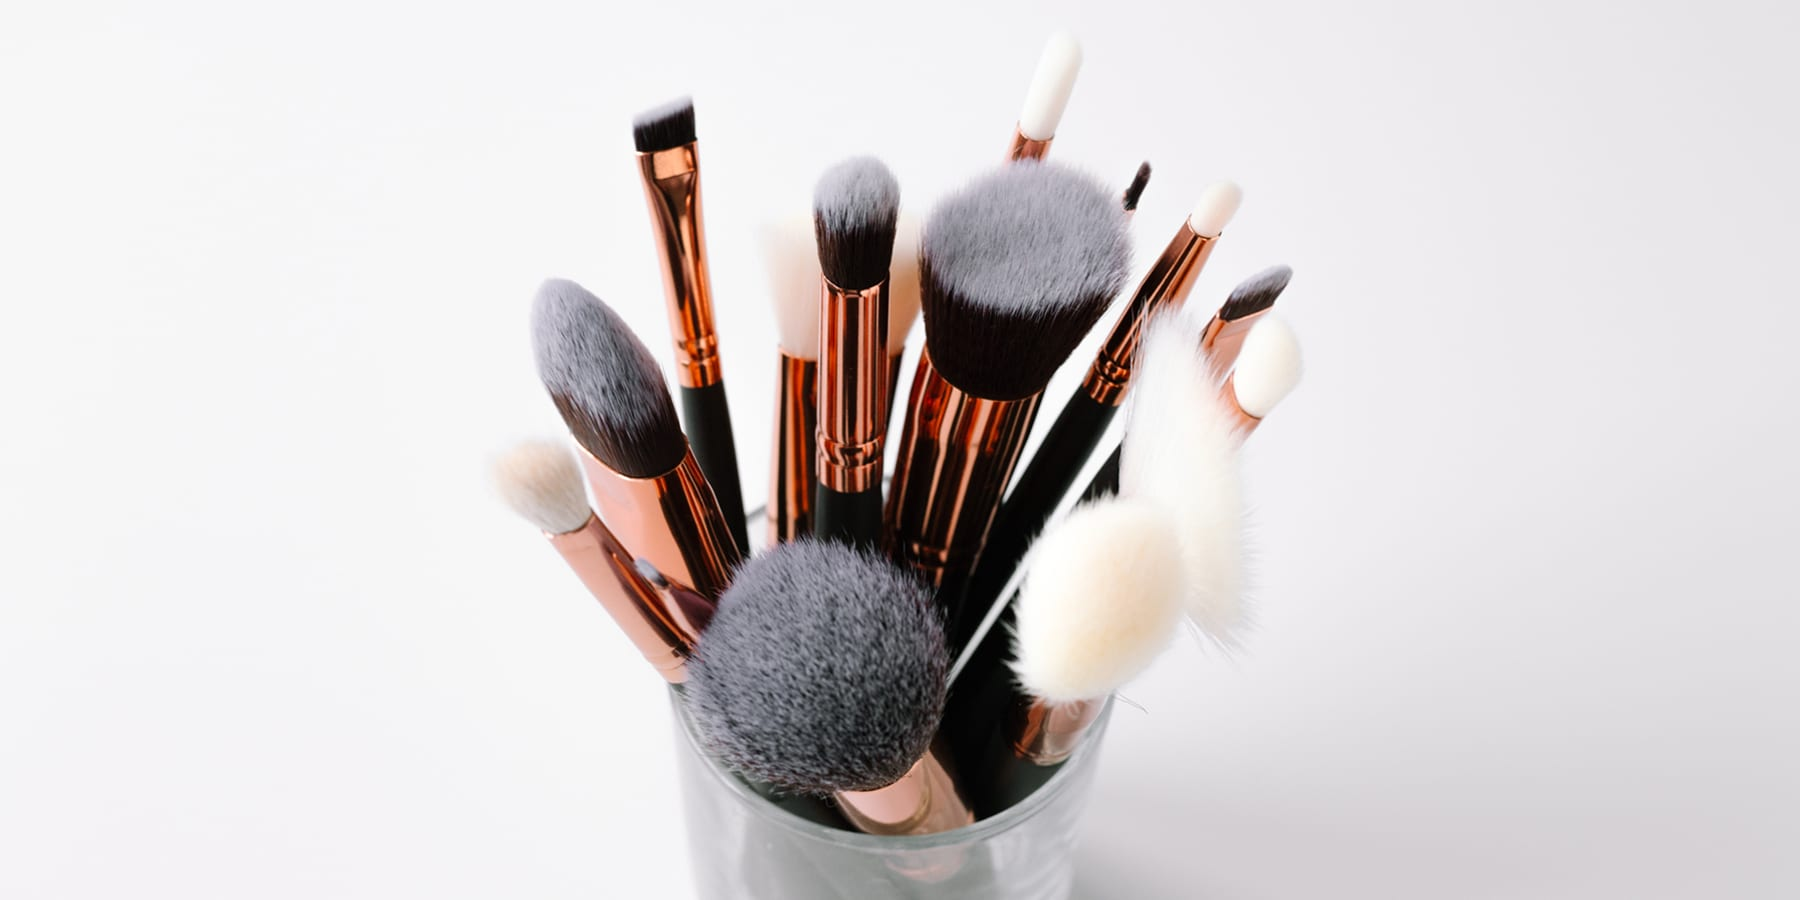 Your Ultimate Make Up Brush Guide!